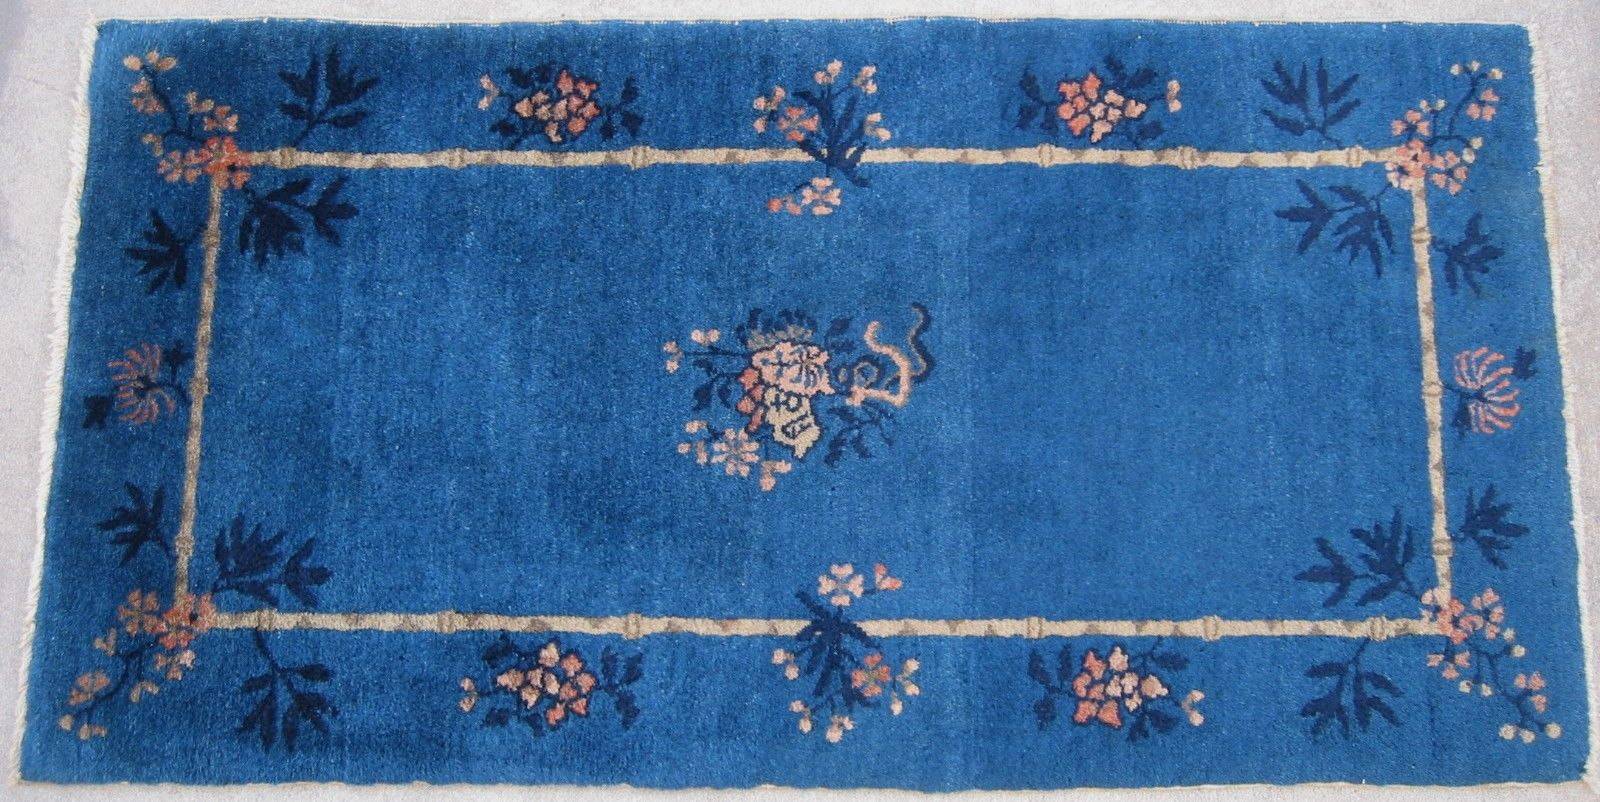 2'6 x 4'10 Hand-knotted Wool Antique Chinese Art Deco ca.190 Peking Blue Rug 12980497 (6)